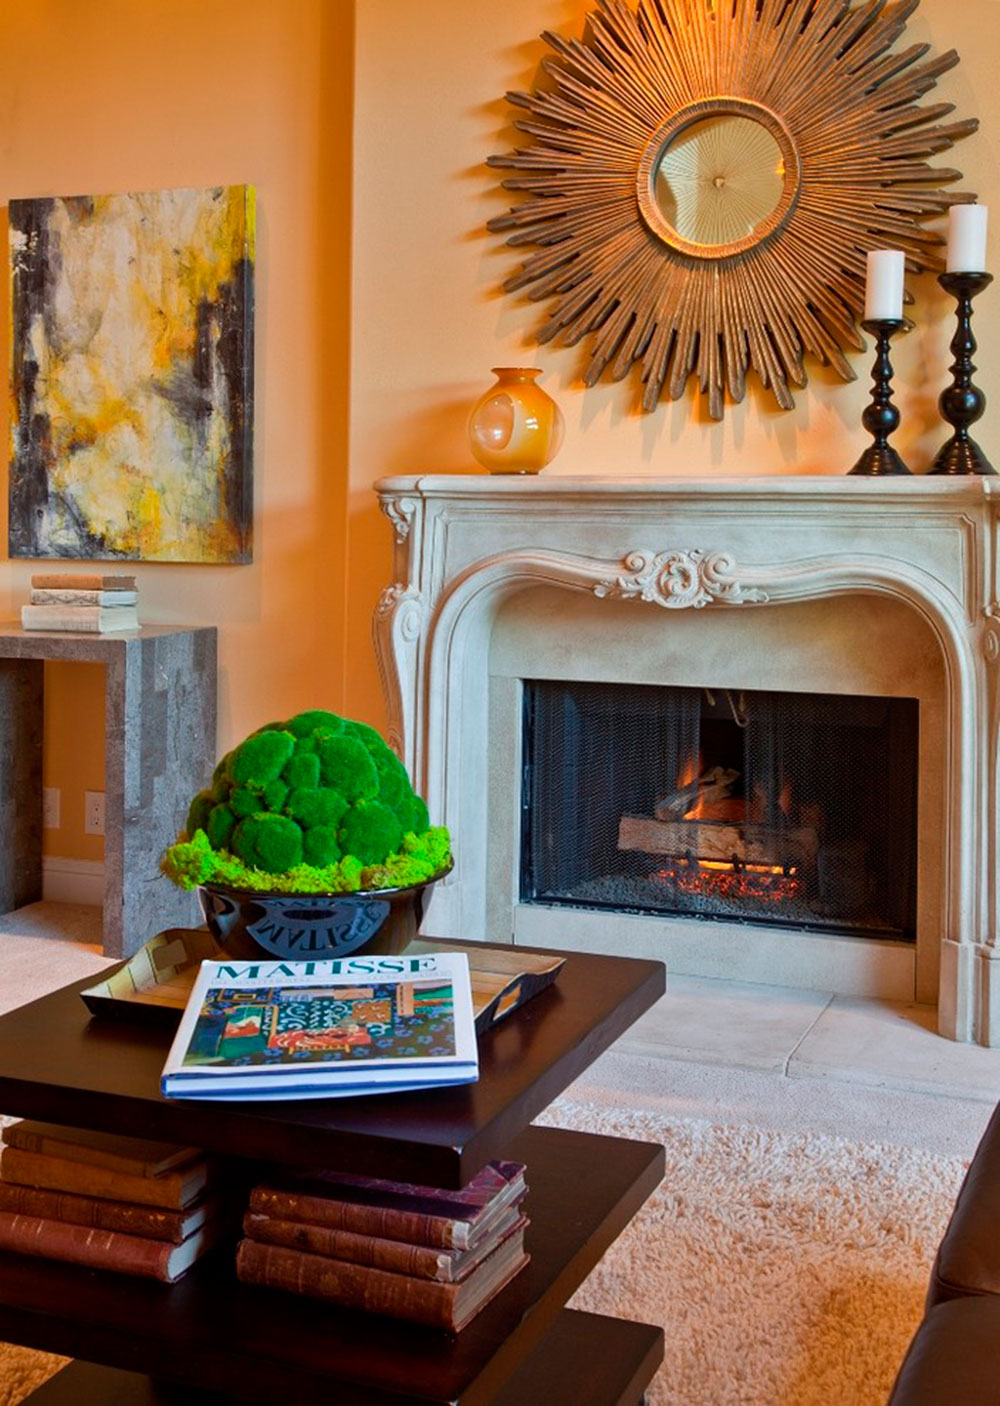 Fireplace Mantel Decorating Ideas Fireplace Mantel Decorating Ideas For A Cozy Home